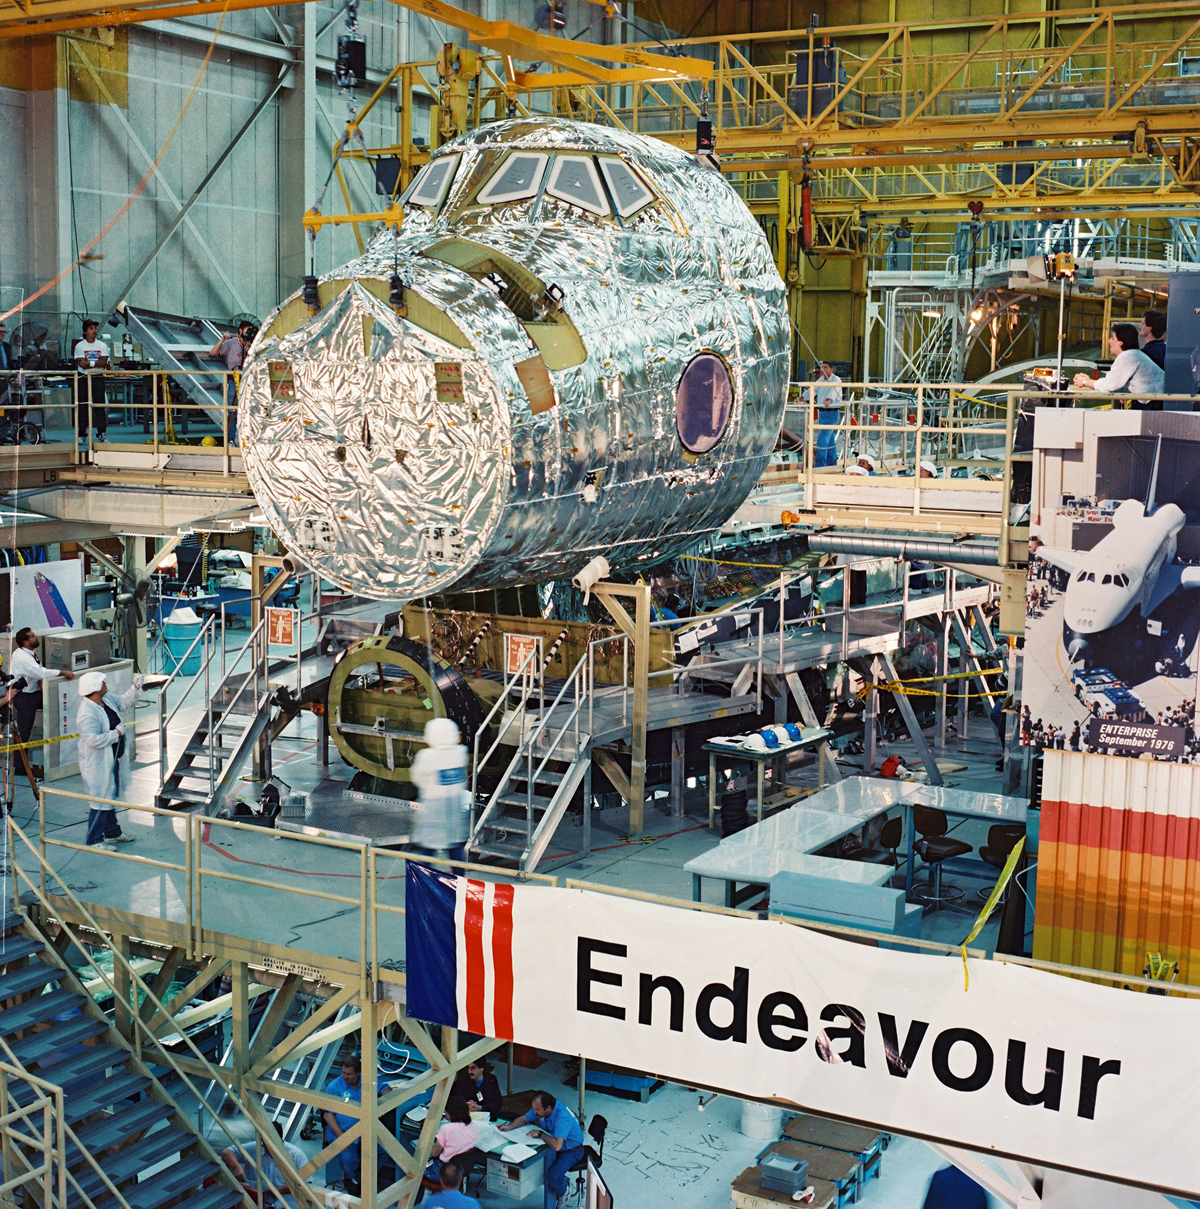 Endeavour's Forward Fuselage/Crew Module Installation